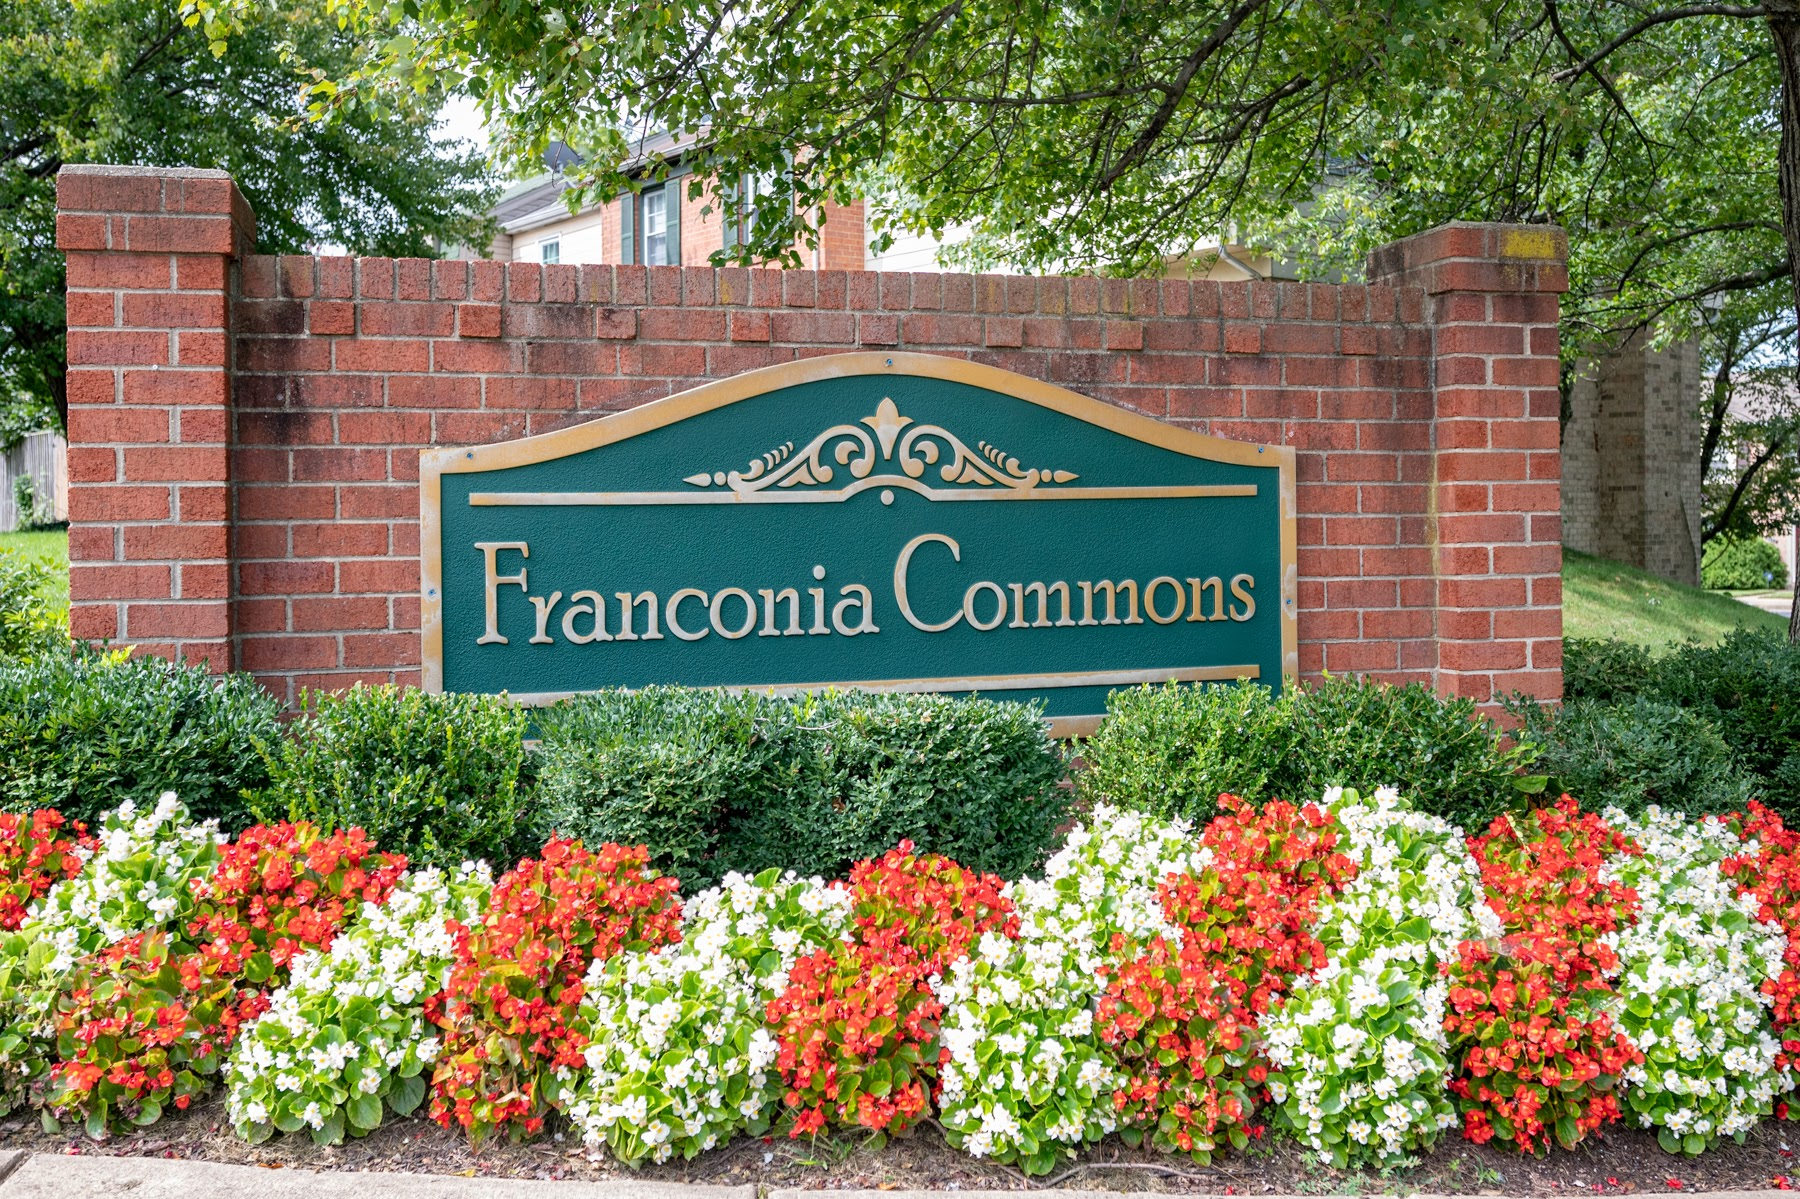 Franconia Commons announcement stone